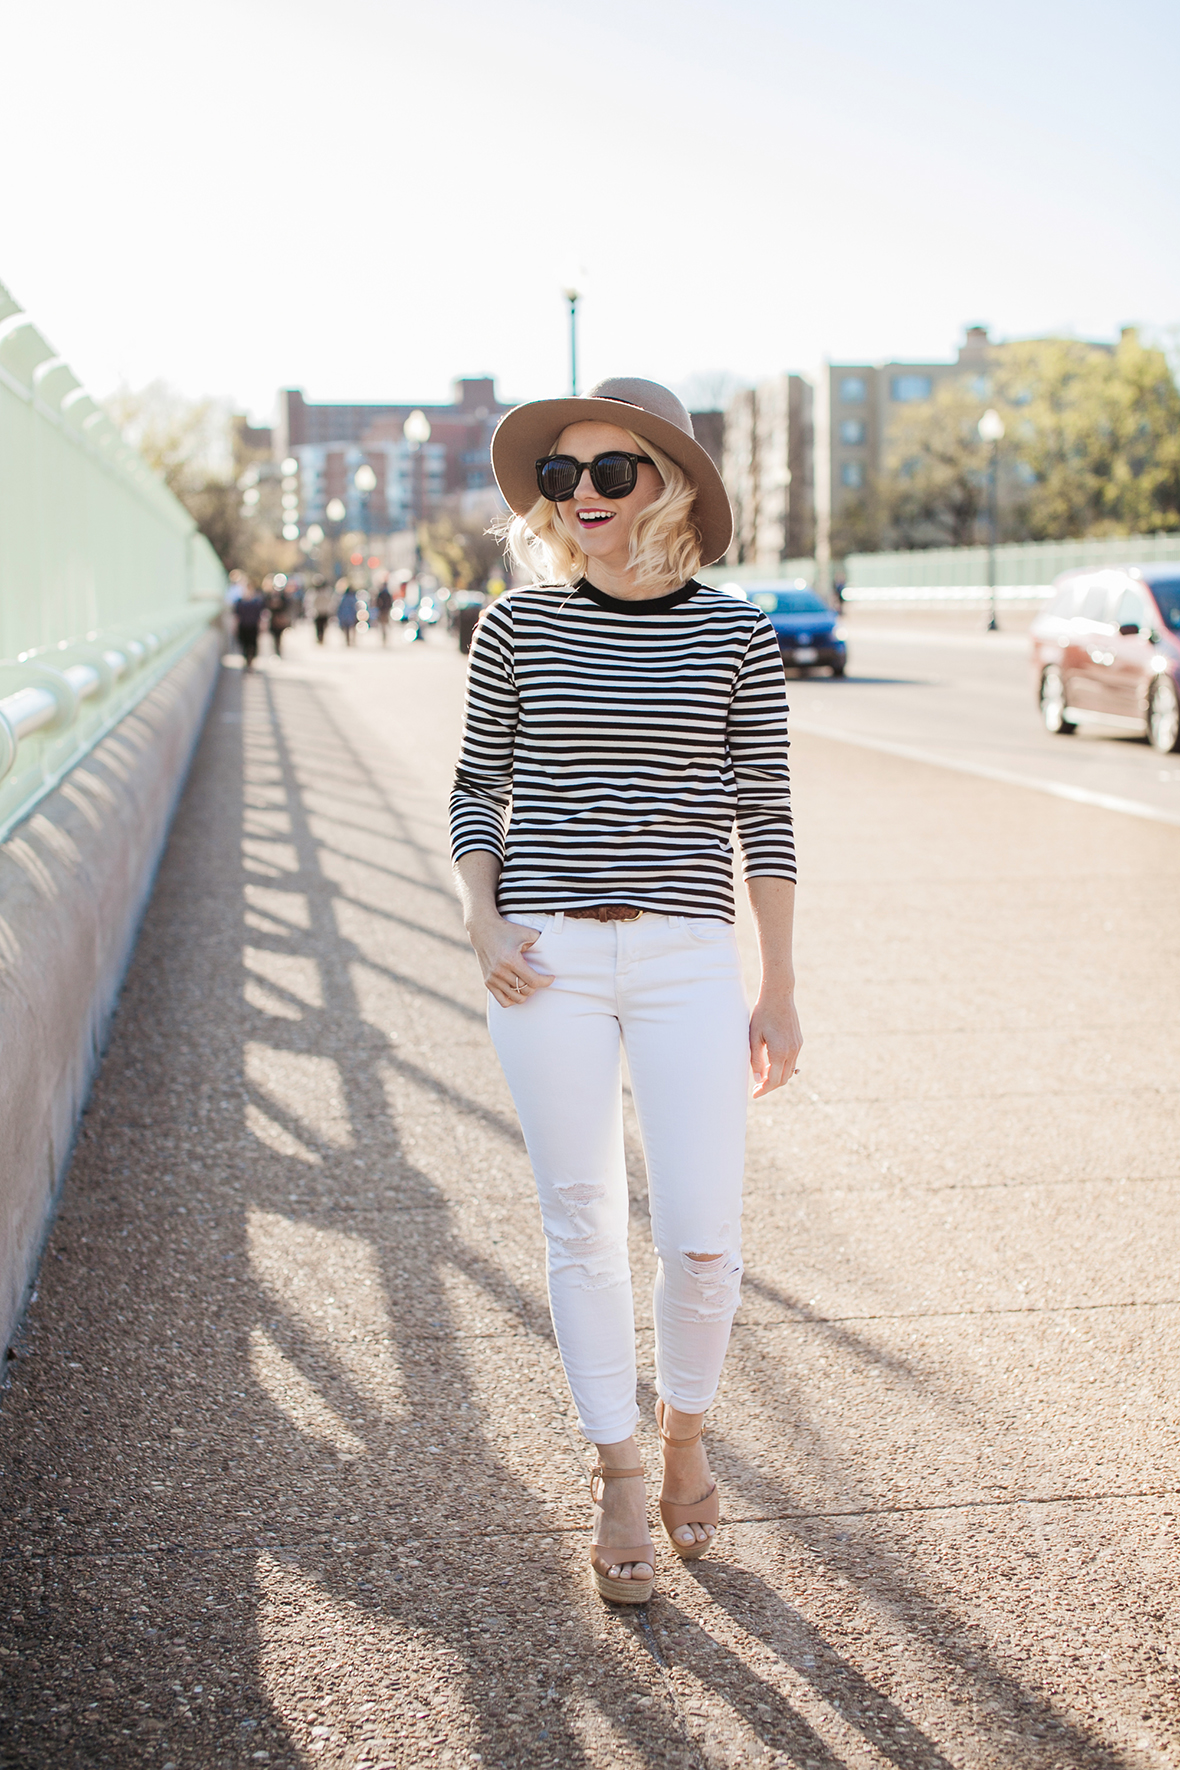 Street style tip of the day: Stripes on stripes